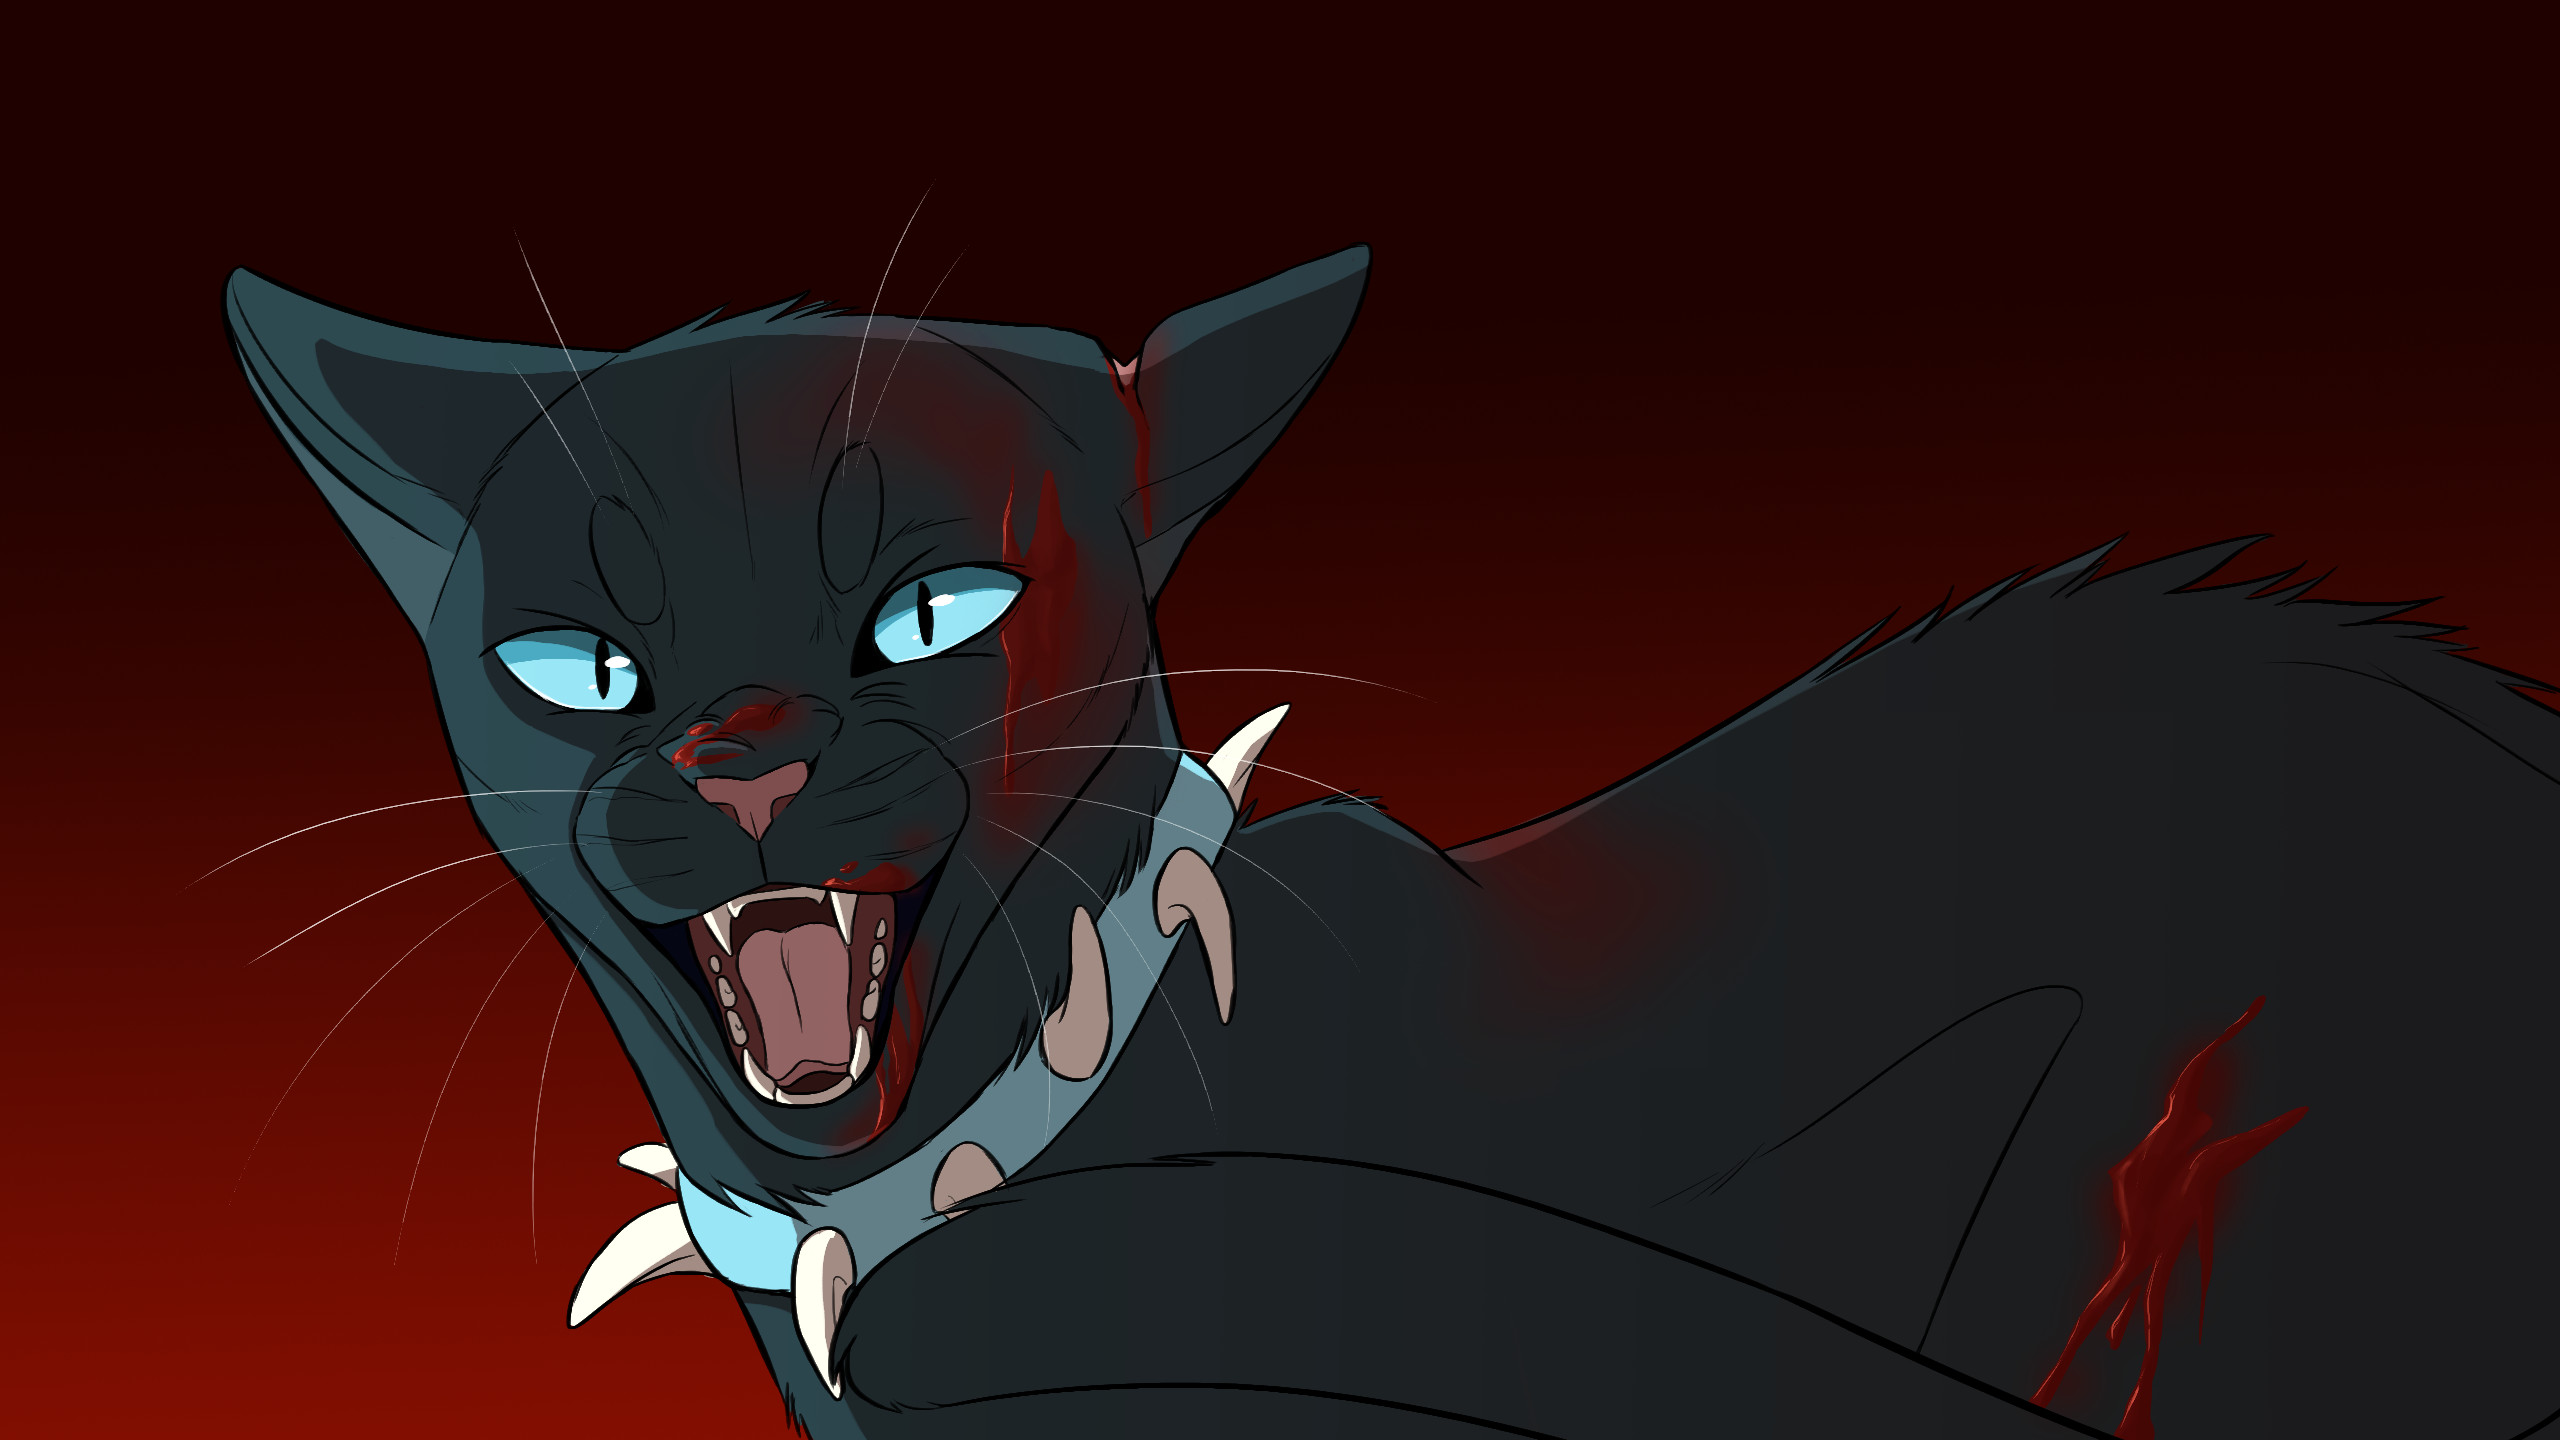 Warrior Cats Wallpapers Scourge Background Pictures Jpg 2560x1440 And Hollyleaf